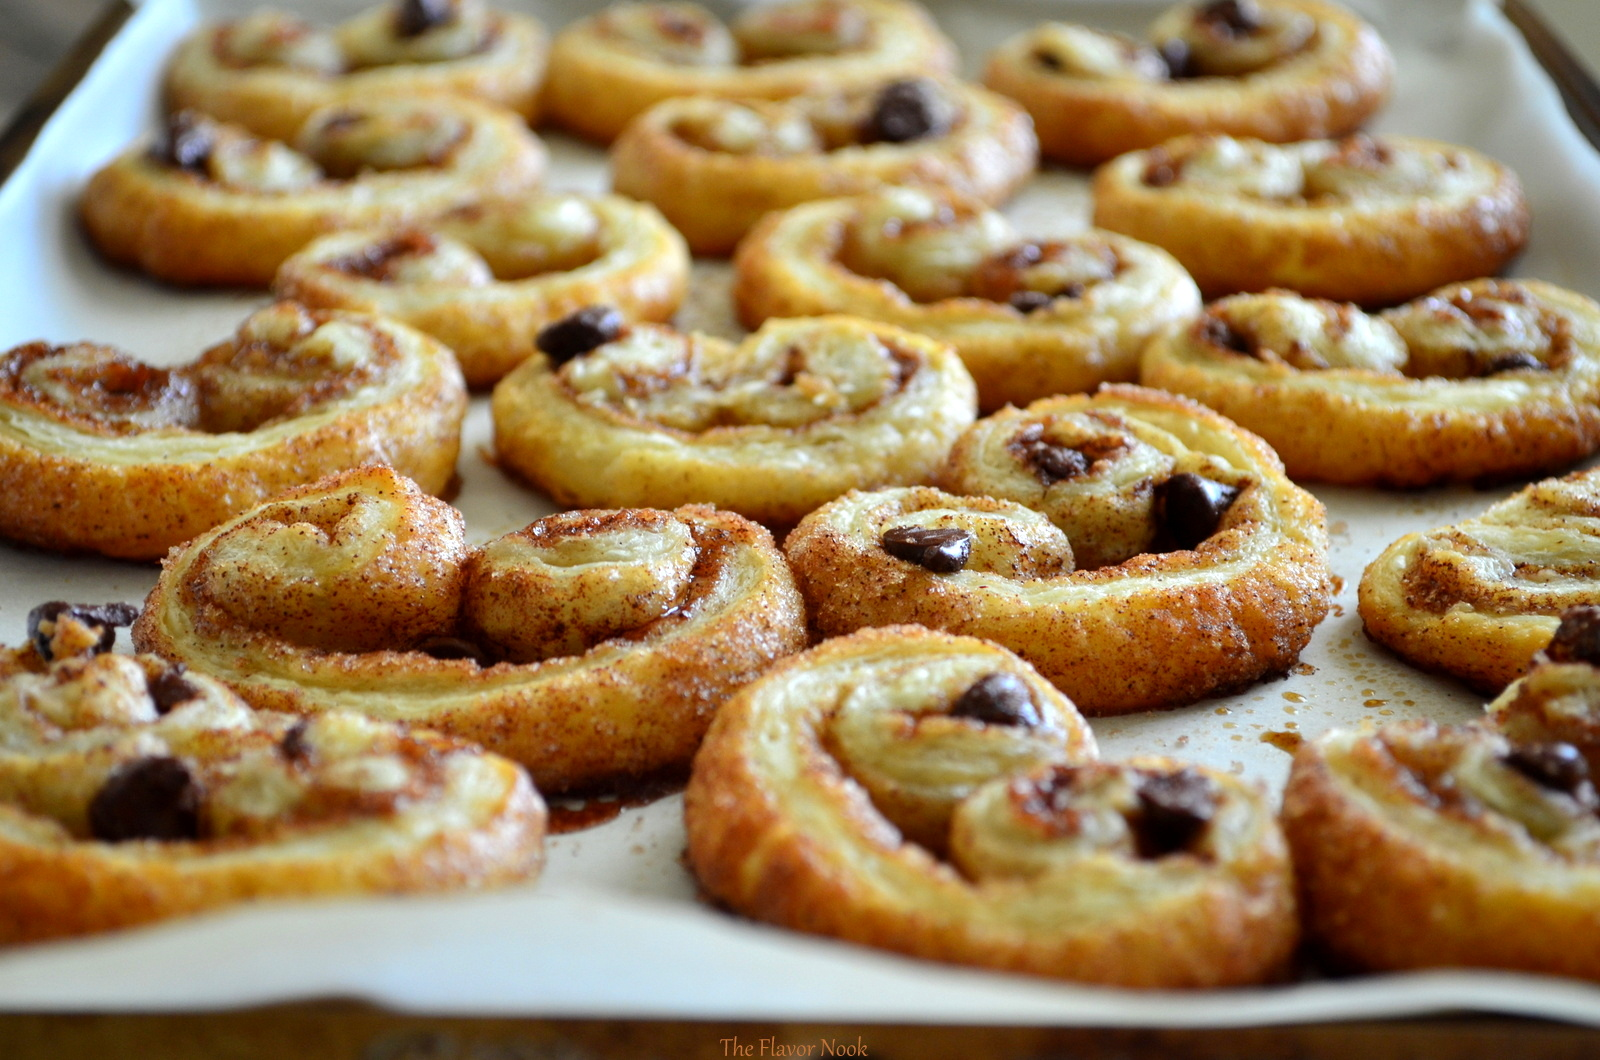 Cinnamon and Chocolate Chip Palmiers